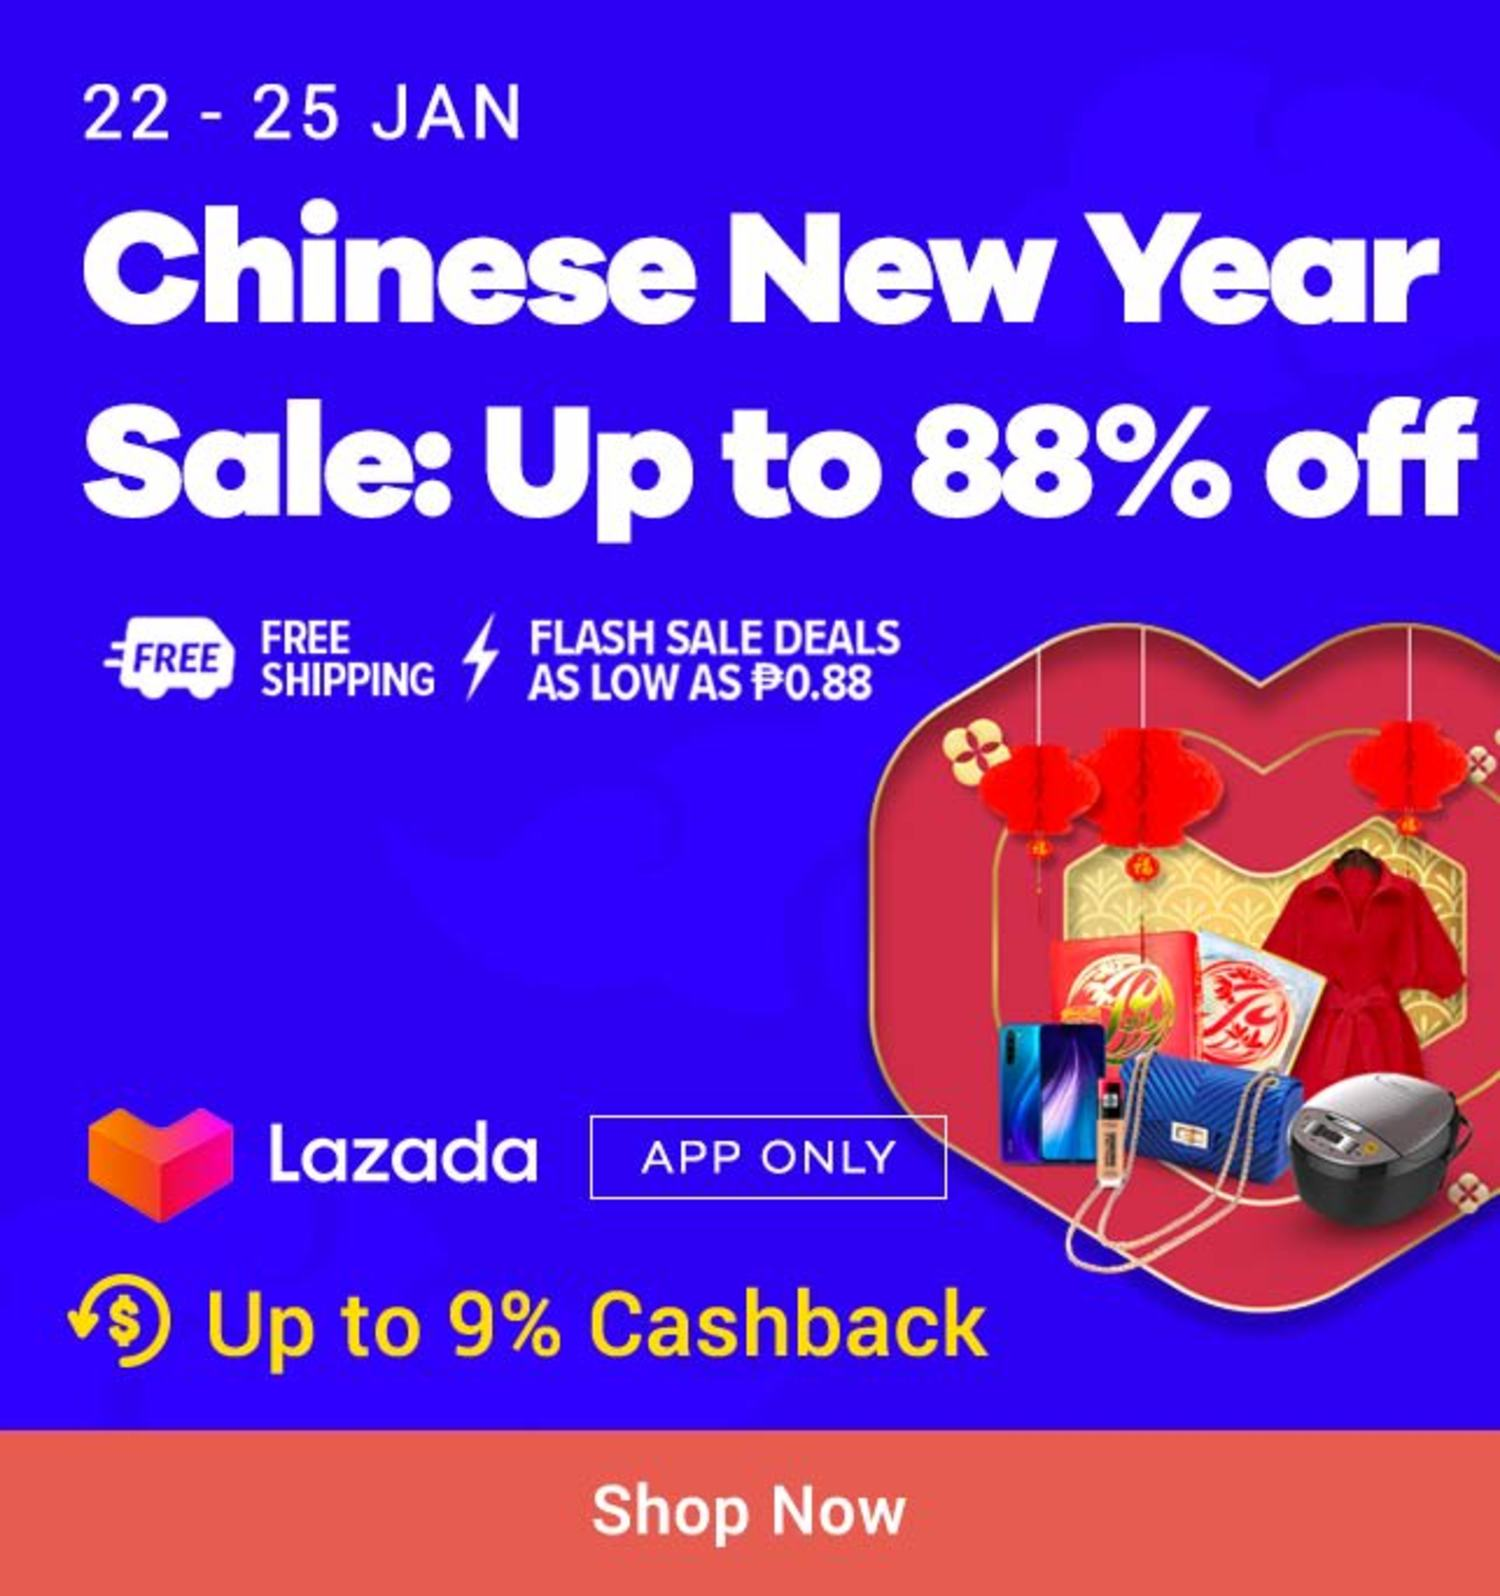 Lazada: Chinese New Year Sale Up to 88% off